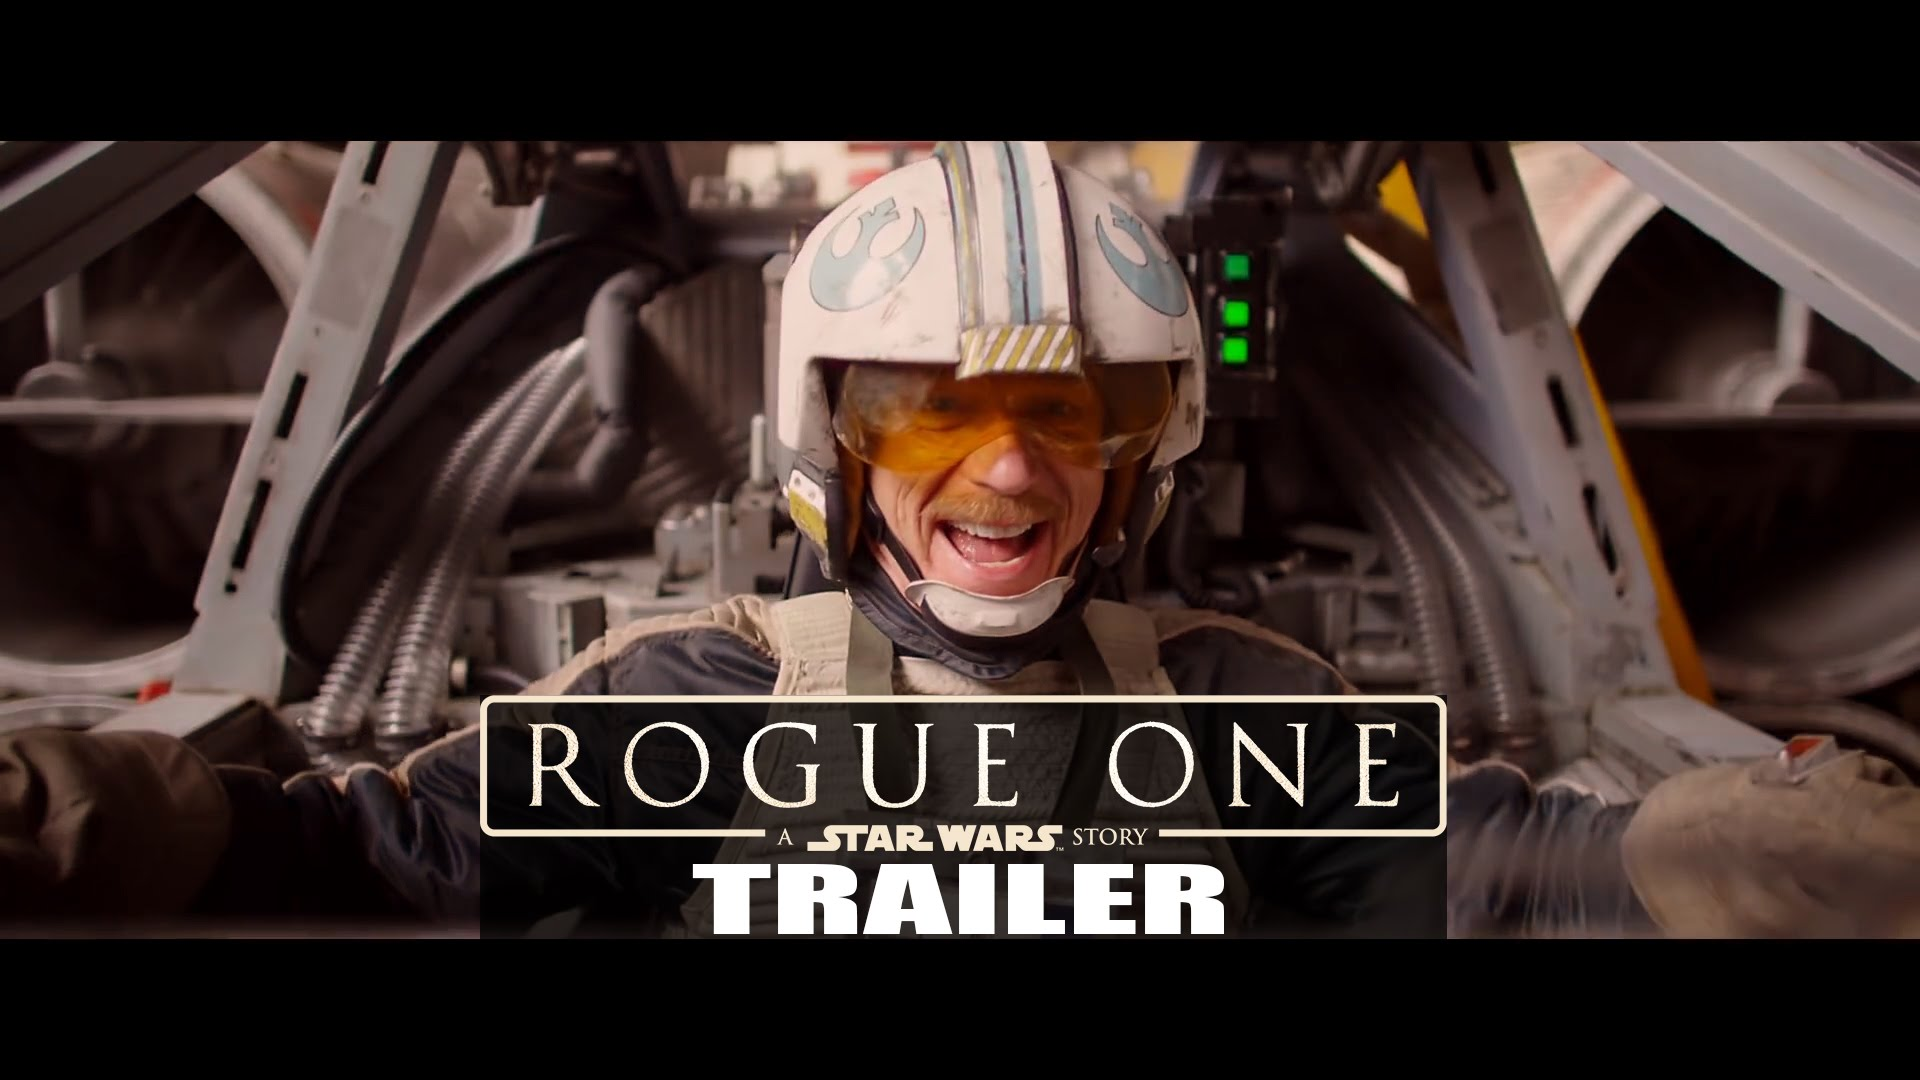 Footage From The Rogue One A Star Wars Story Trailers Set To The Beastie Boys Song Sabotage